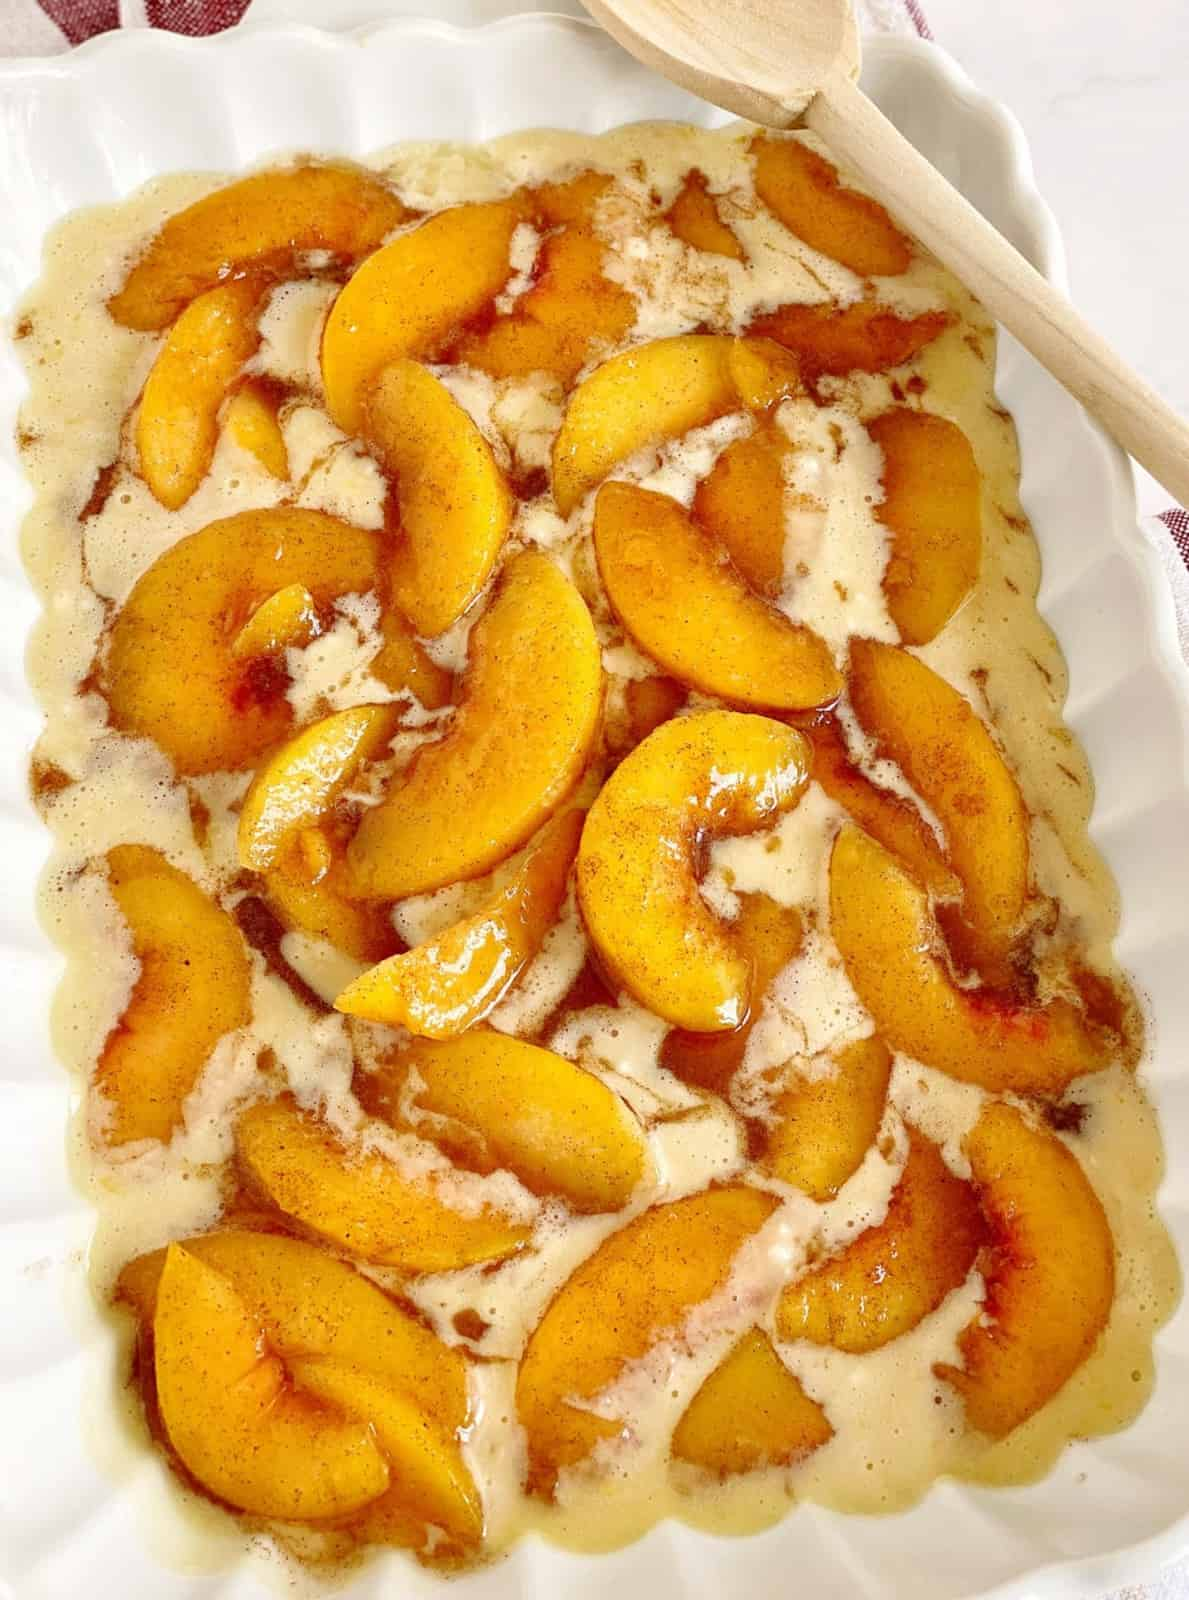 peaches on top of batter in a baking dish